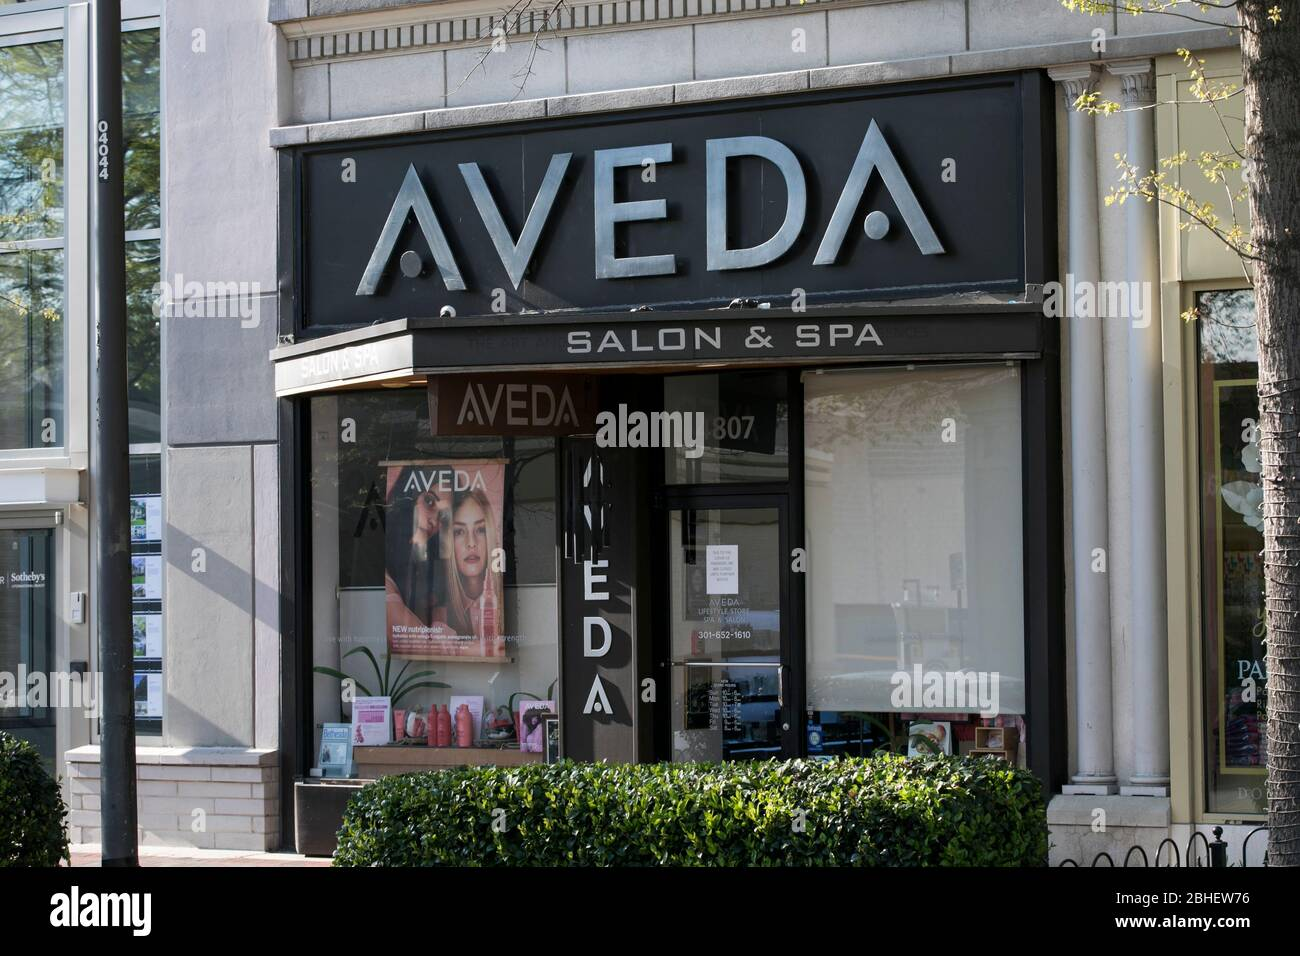 A Logo Sign Outside Of A Aveda Salon And Spa Location In Bethesda Maryland On April 22 2020 Stock Photo Alamy